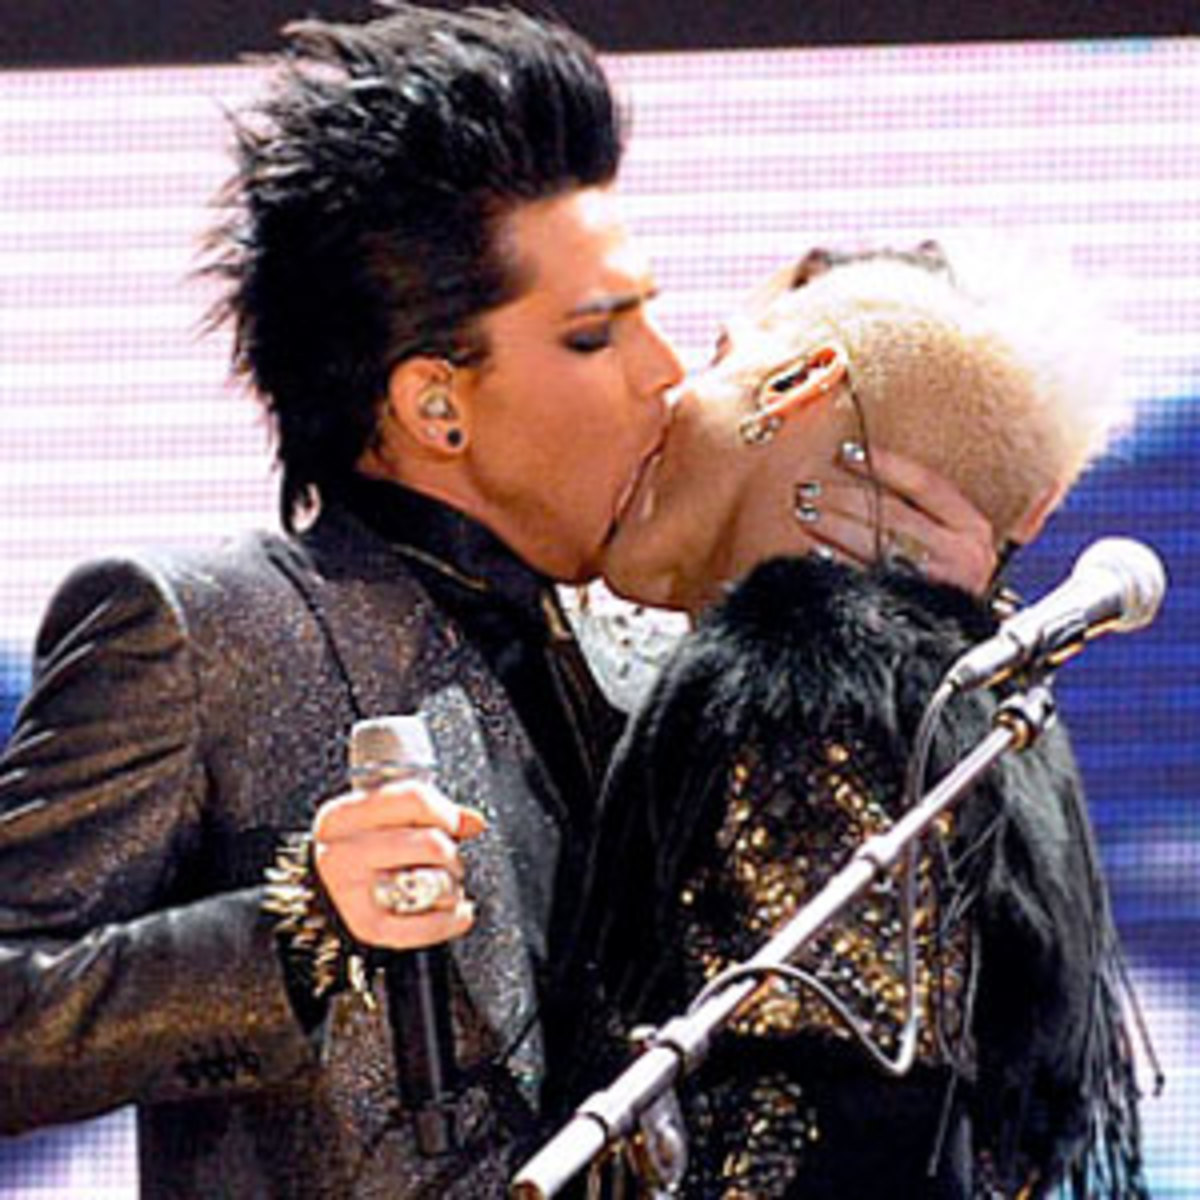 Adam Lambert kissing another male